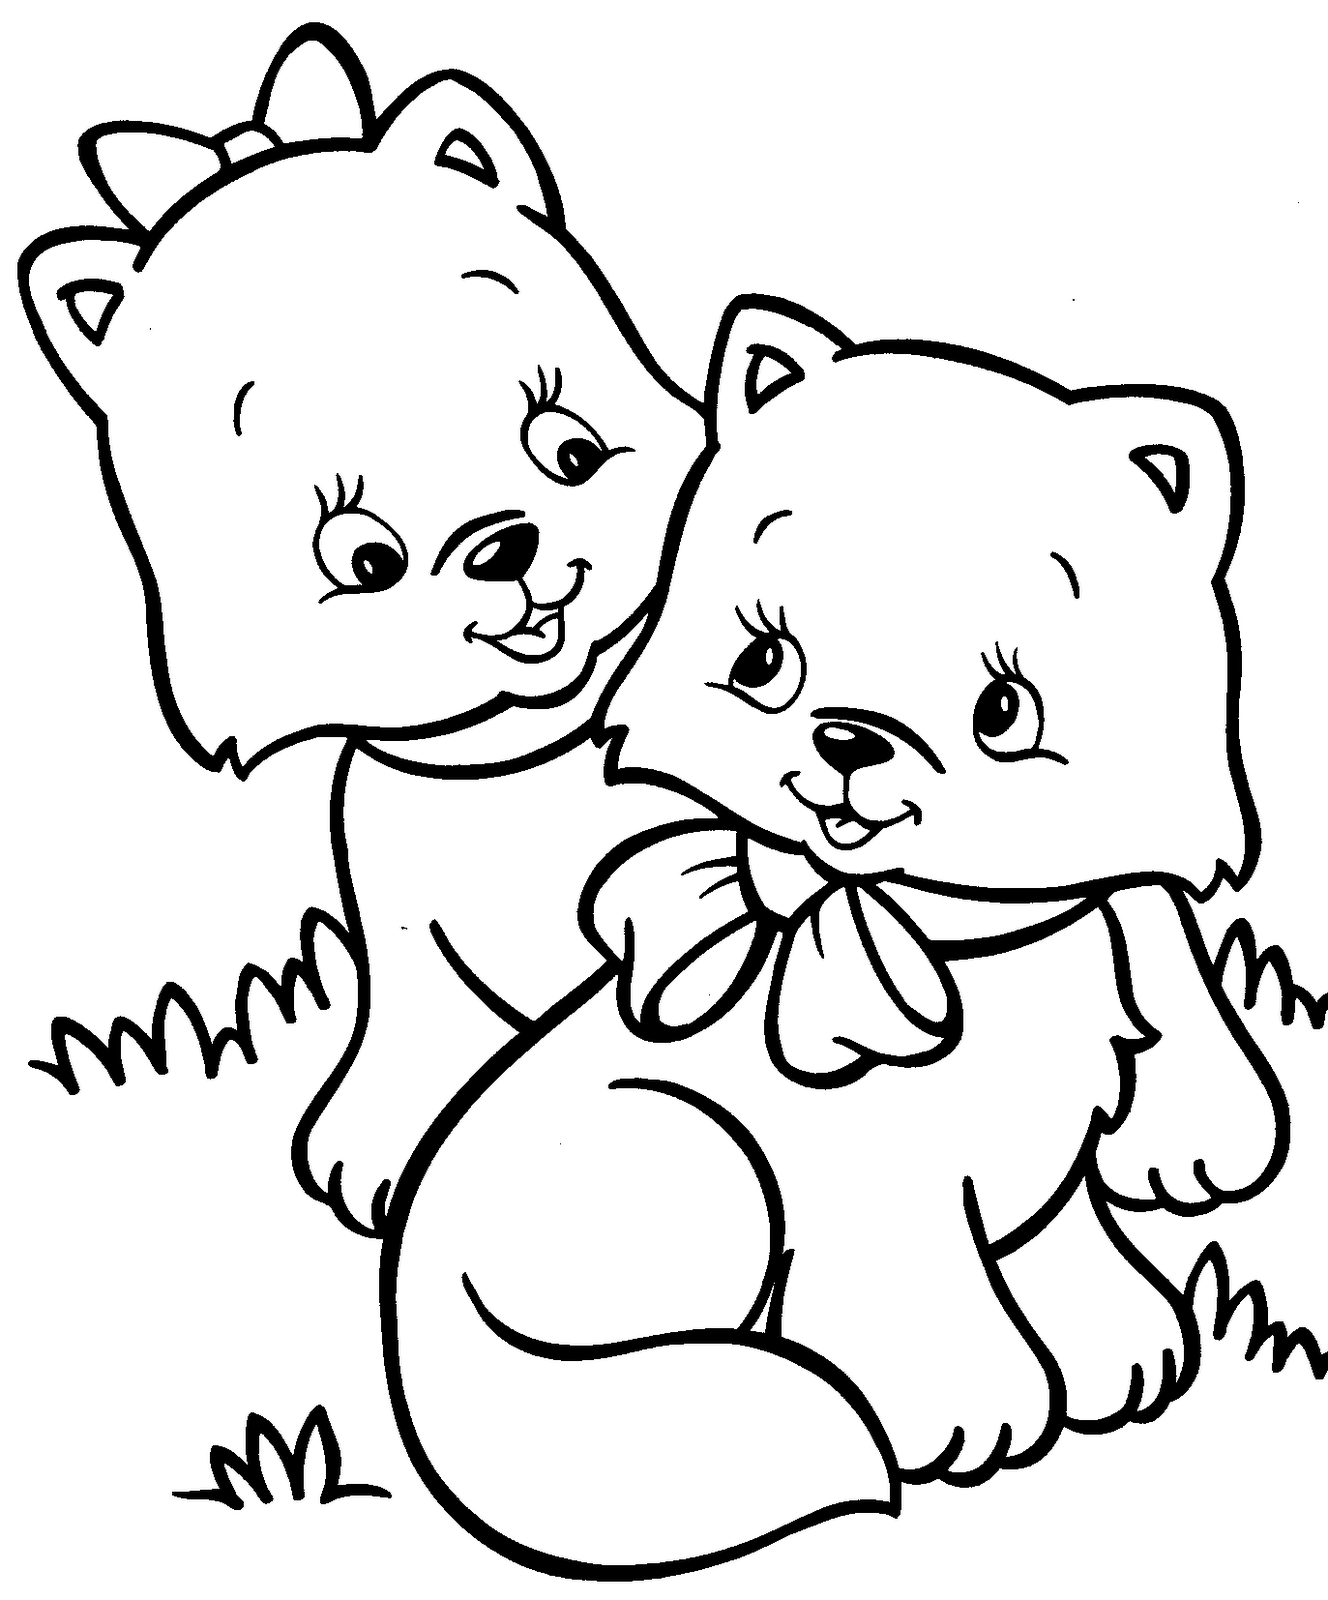 kitten color pages free printable cat coloring pages for kids kitten color pages